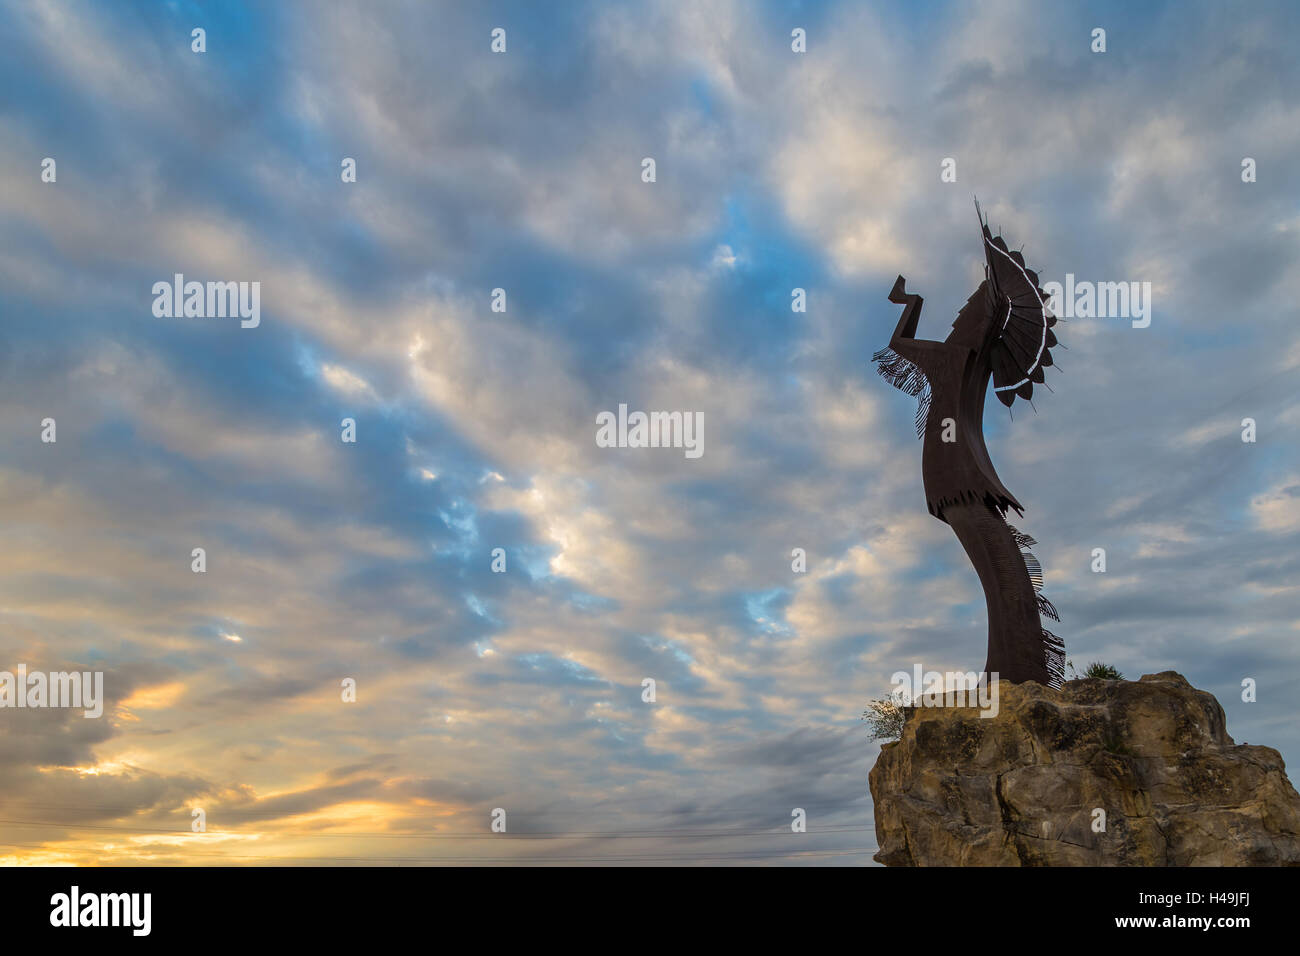 Keeper of the Plains in Wichita, Kansas near sunrise - Stock Image